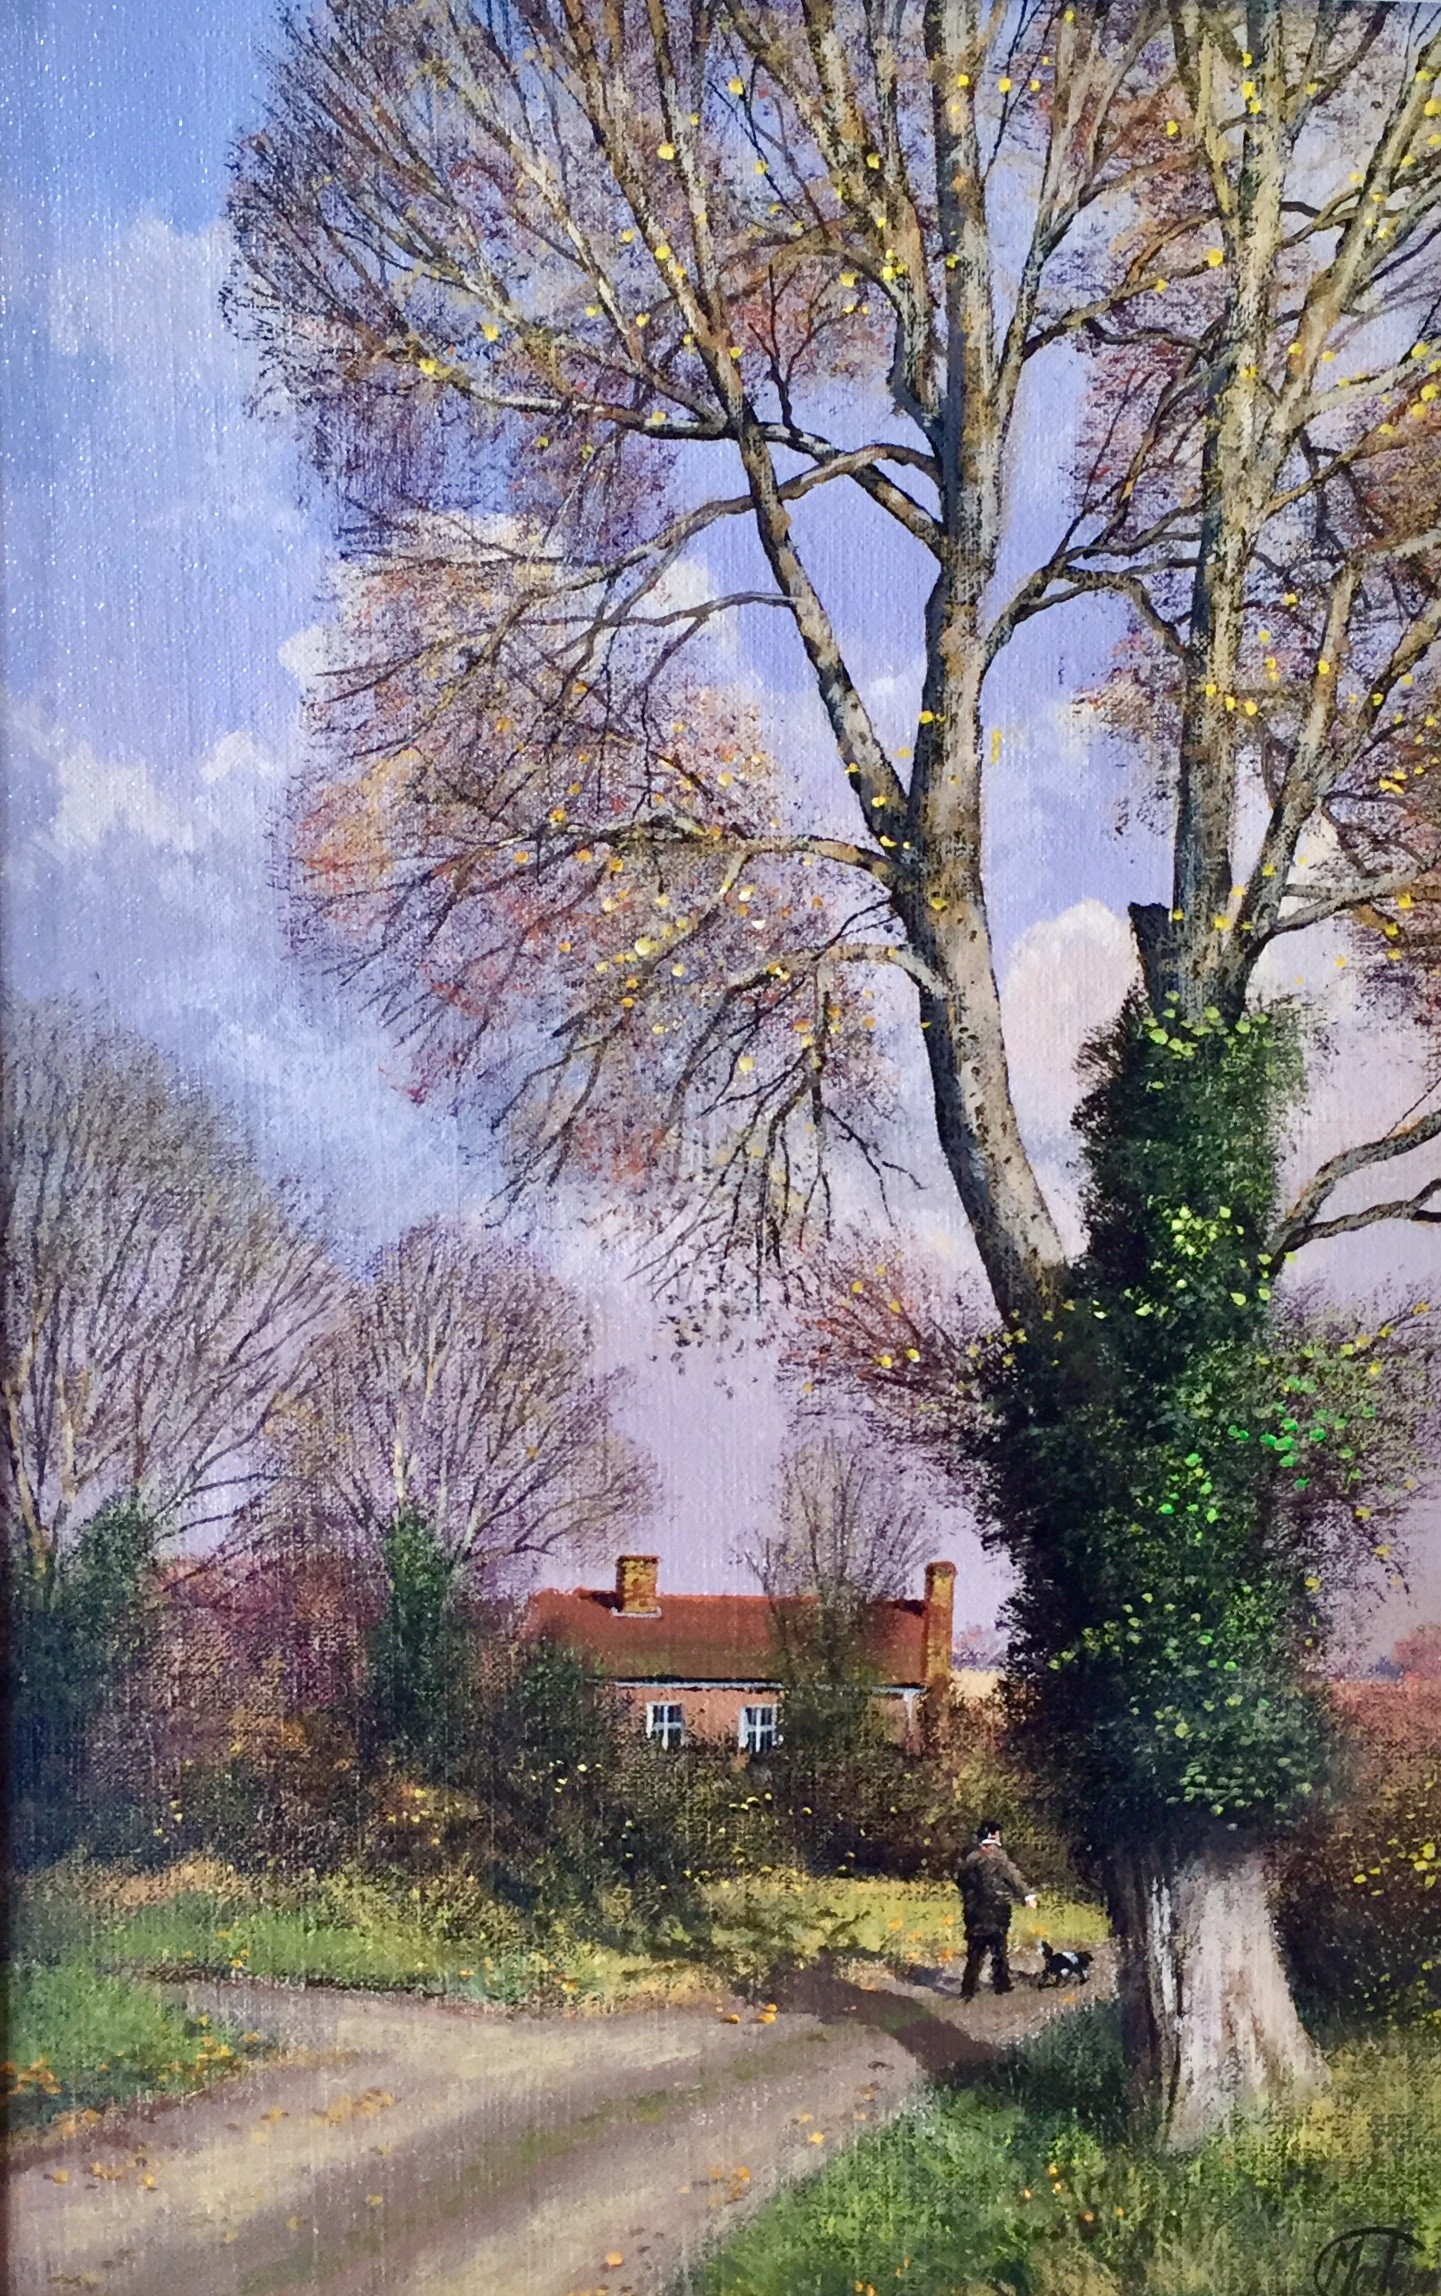 Autumn Scene, Man & His Dog - SOLD